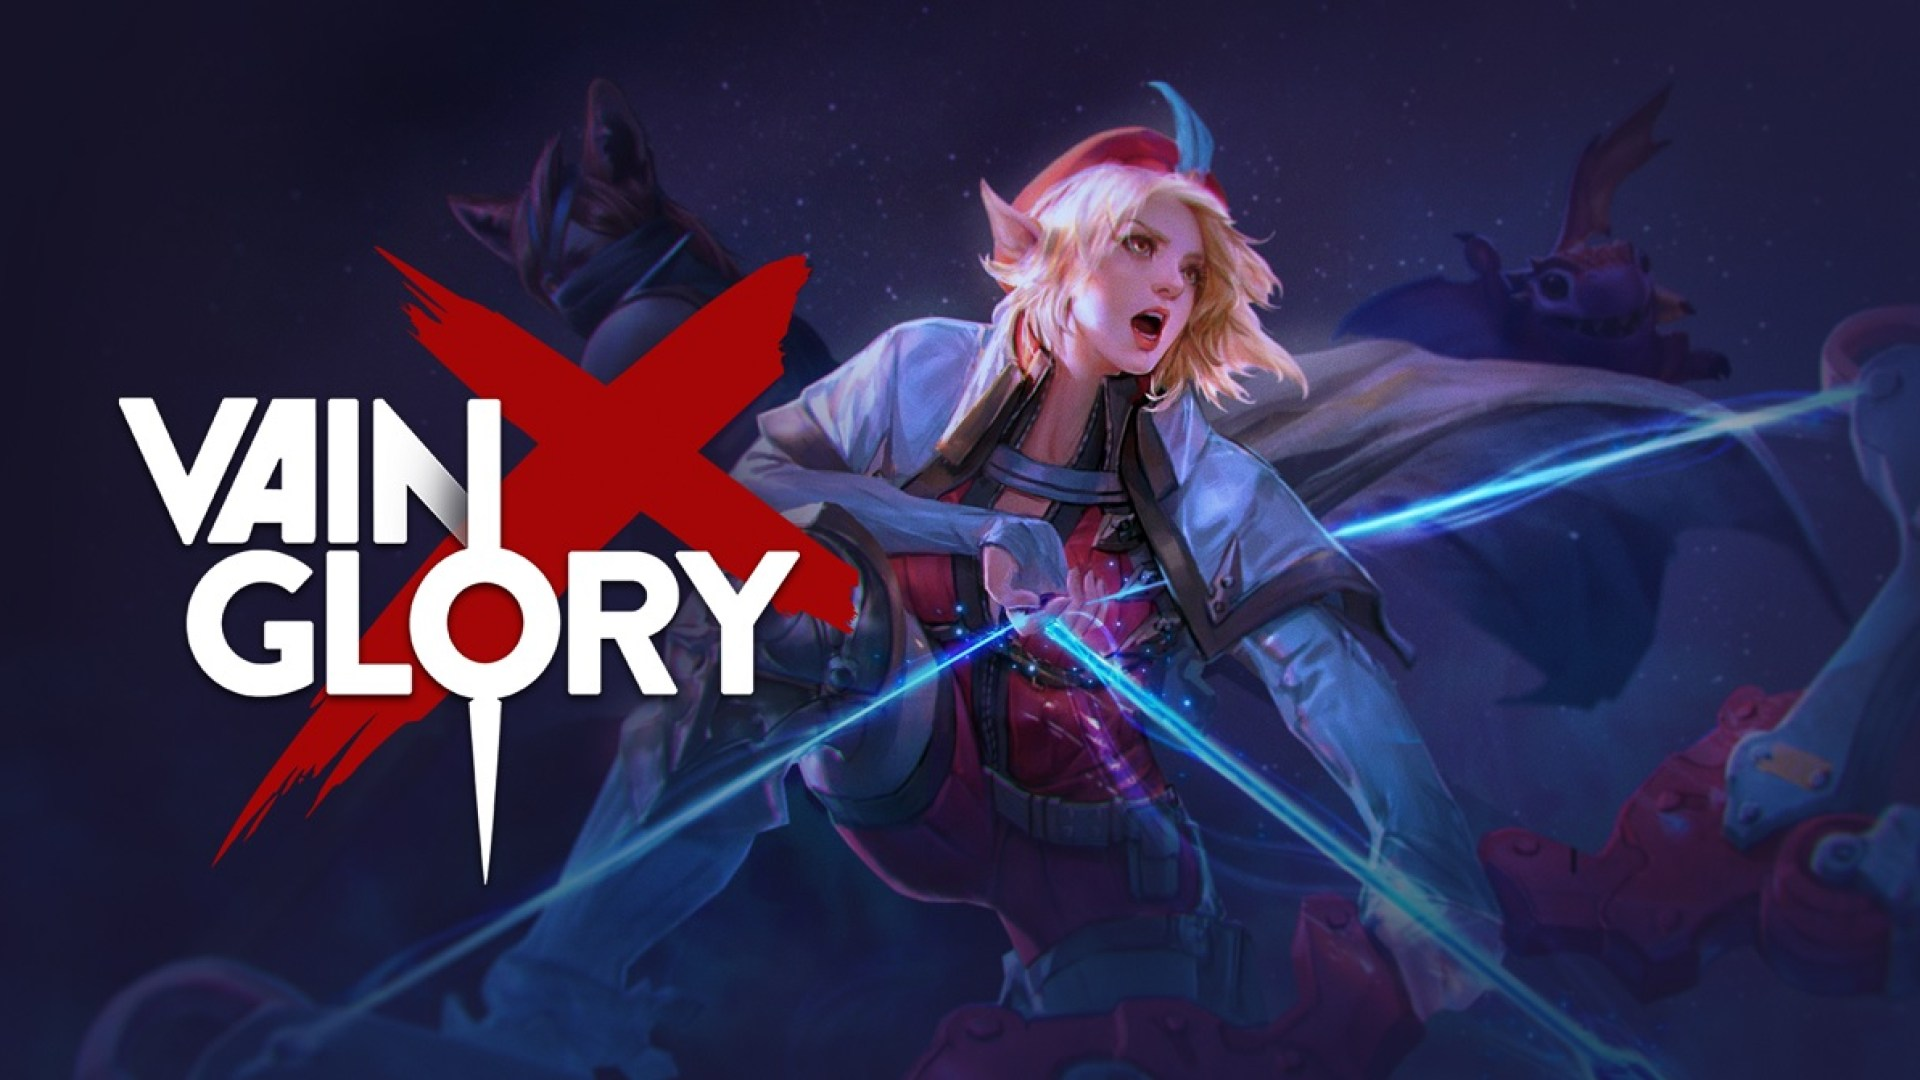 Vainglory goes cross-platform on mobile, Steam, and Mac